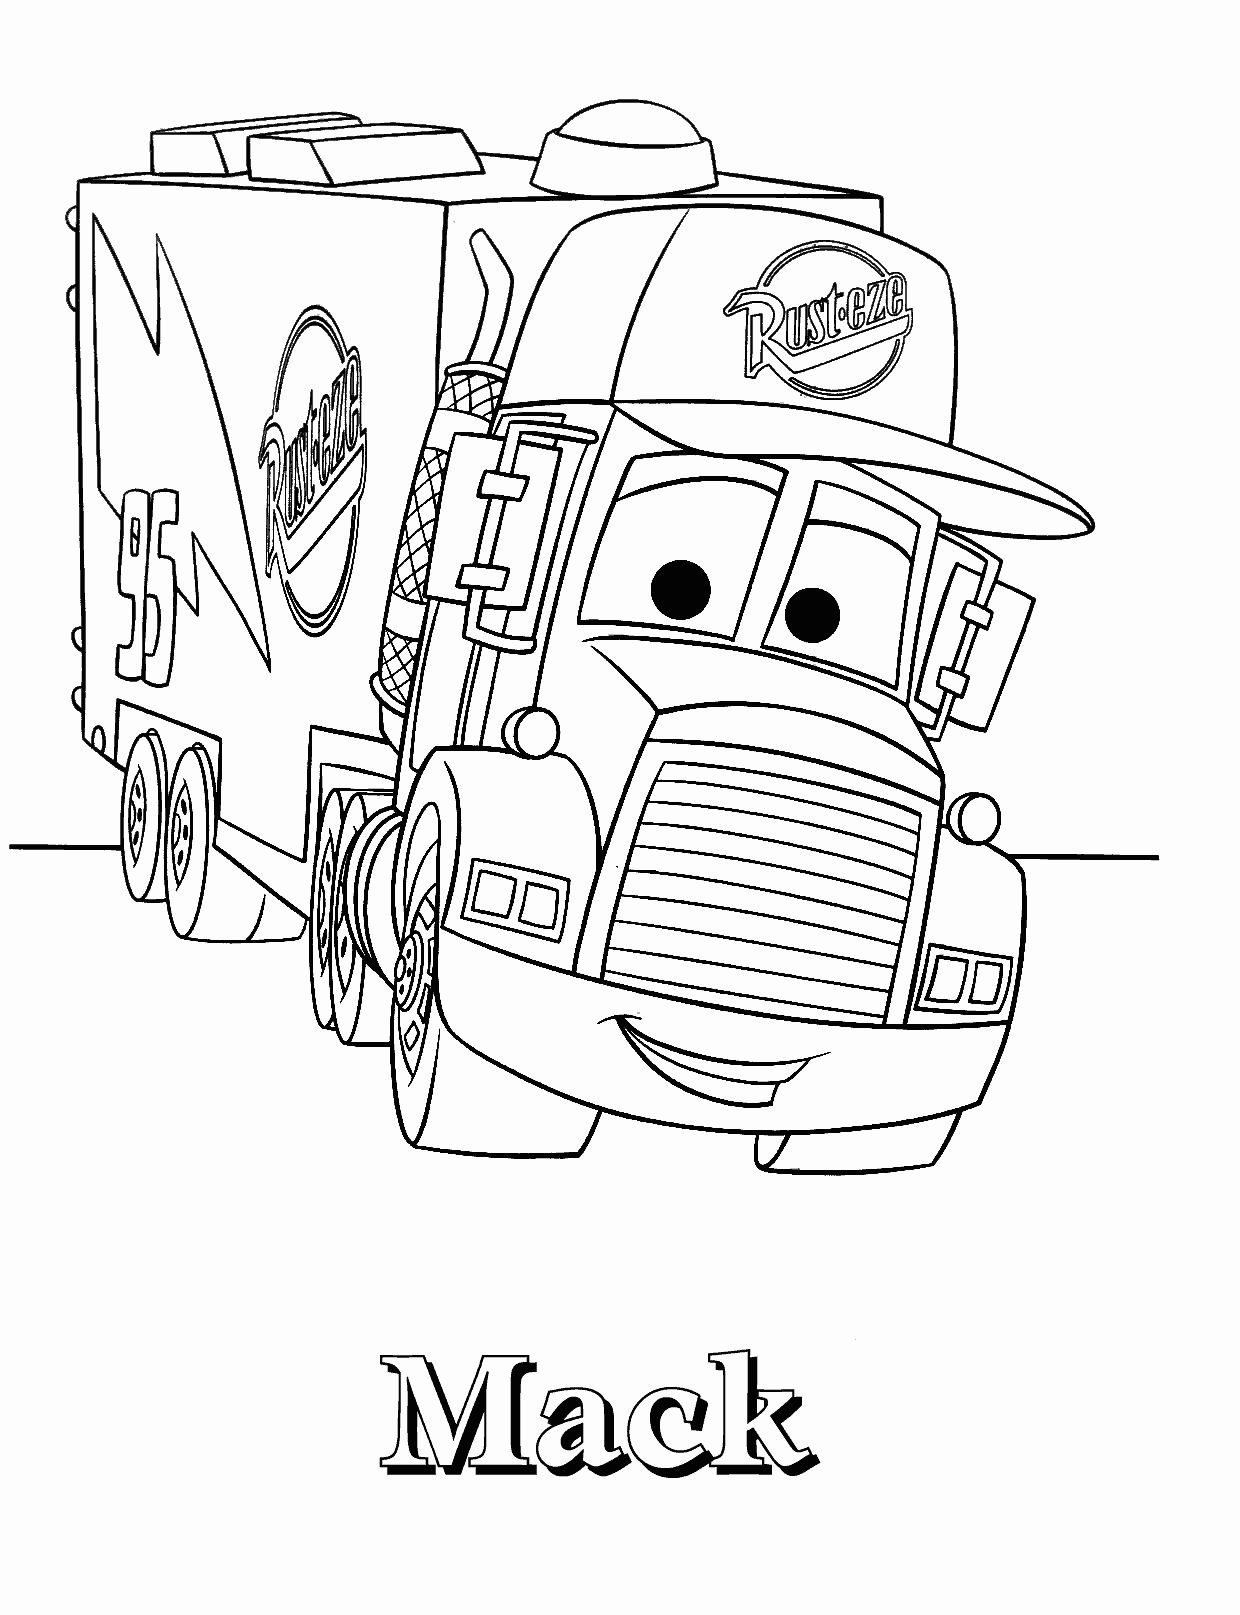 Lightning Mcqueen Coloring Pages Printable Elegant Printable Lightning Mcqueen Coloring Cars Coloring Pages Disney Coloring Pages Monster Truck Coloring Pages